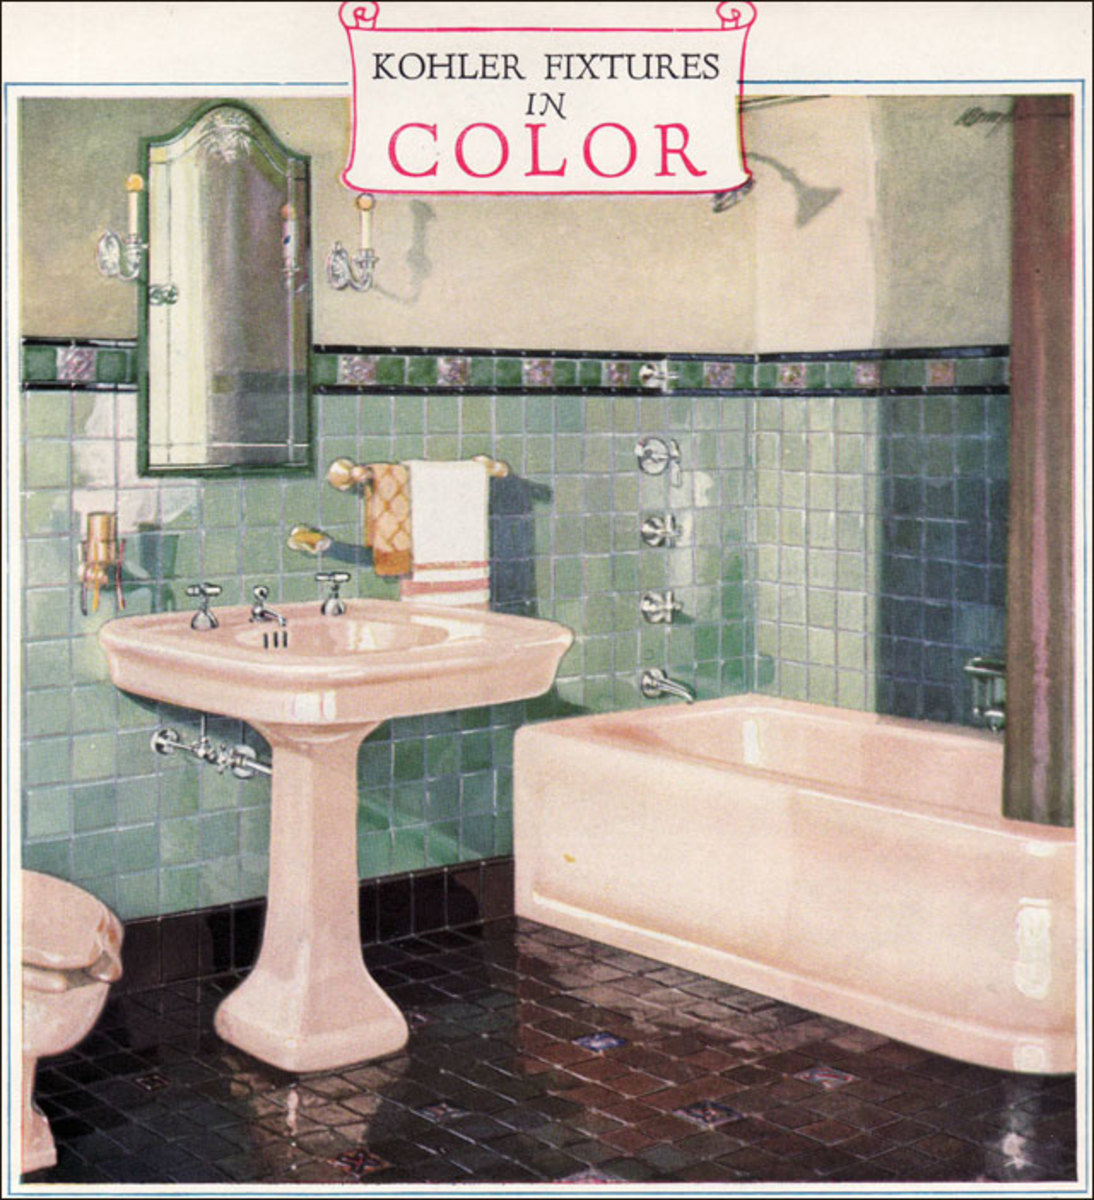 Where most of the fixtures offered during the first half of the 1920s were almost always white, color was the innovation that manufacturers dangled enticingly to homeowners after 1925. Colors from the late 20s forward were available at a small additi